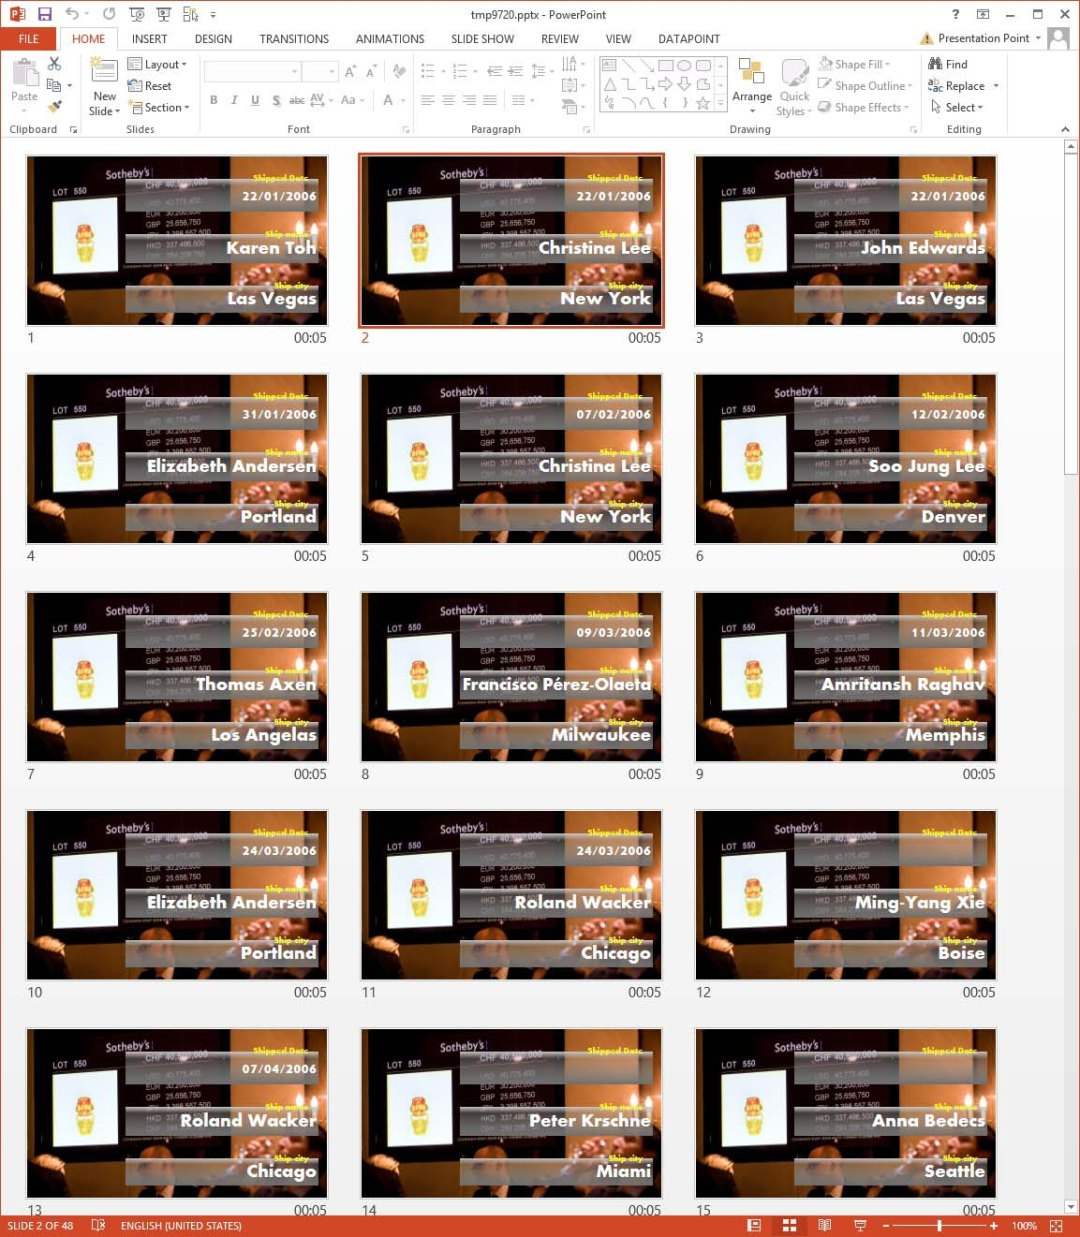 powerpoint presentation with automatic generated slides by our presentation maker software